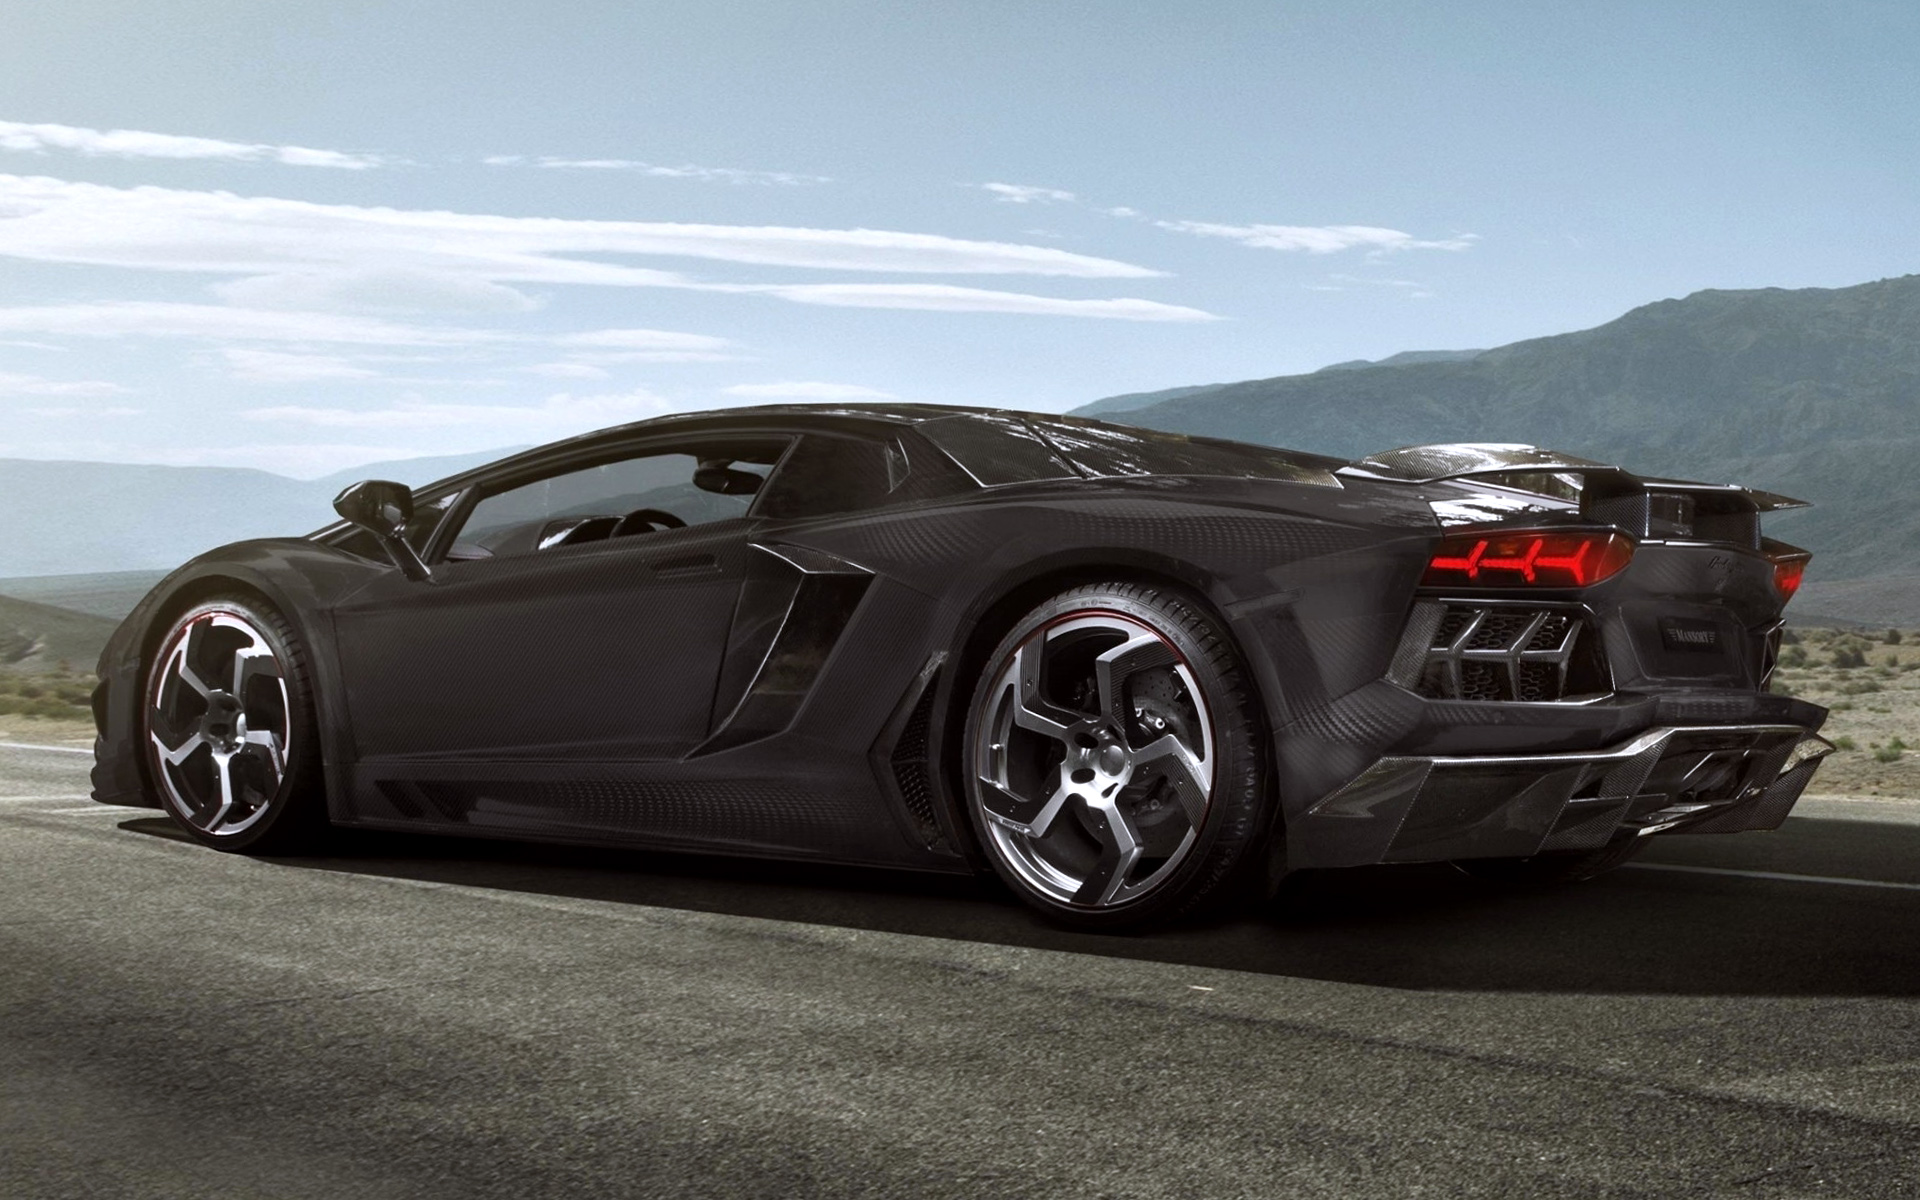 Retro Car Home Wallpaper Black Car Lamborghini Wallpapers Hd Desktop And Mobile